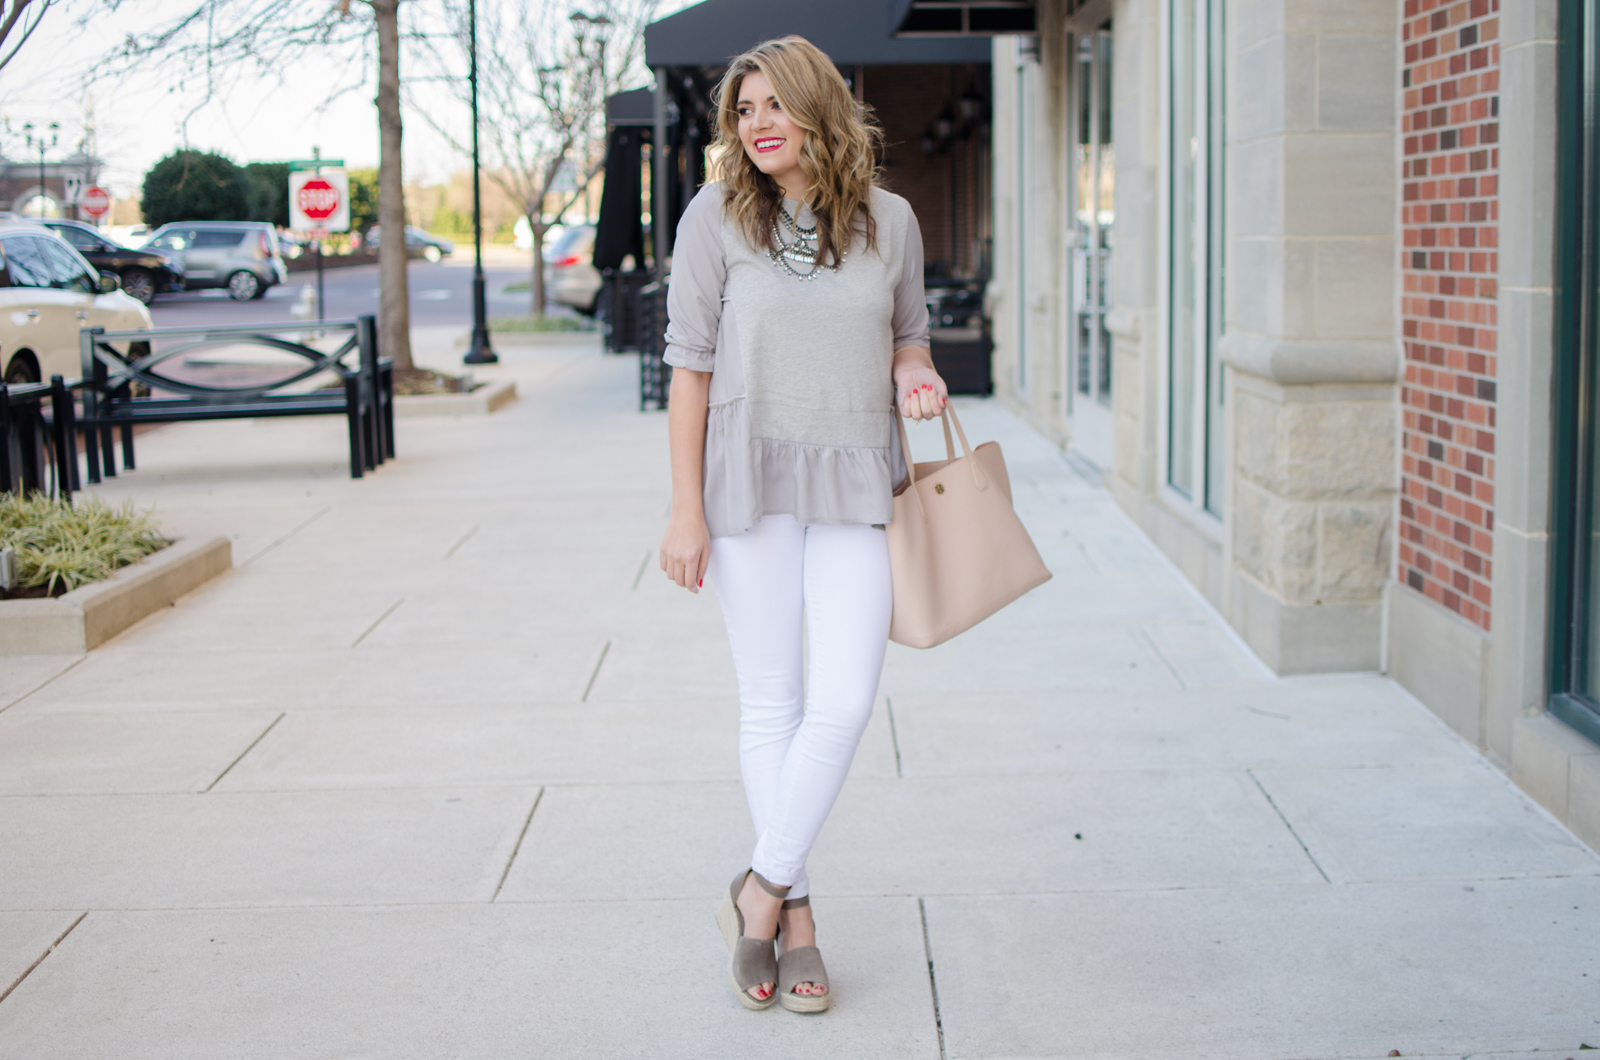 gray ruffle tee outfit - Click through for more cute Spring outfits or to shop this look! bylaurenm.com